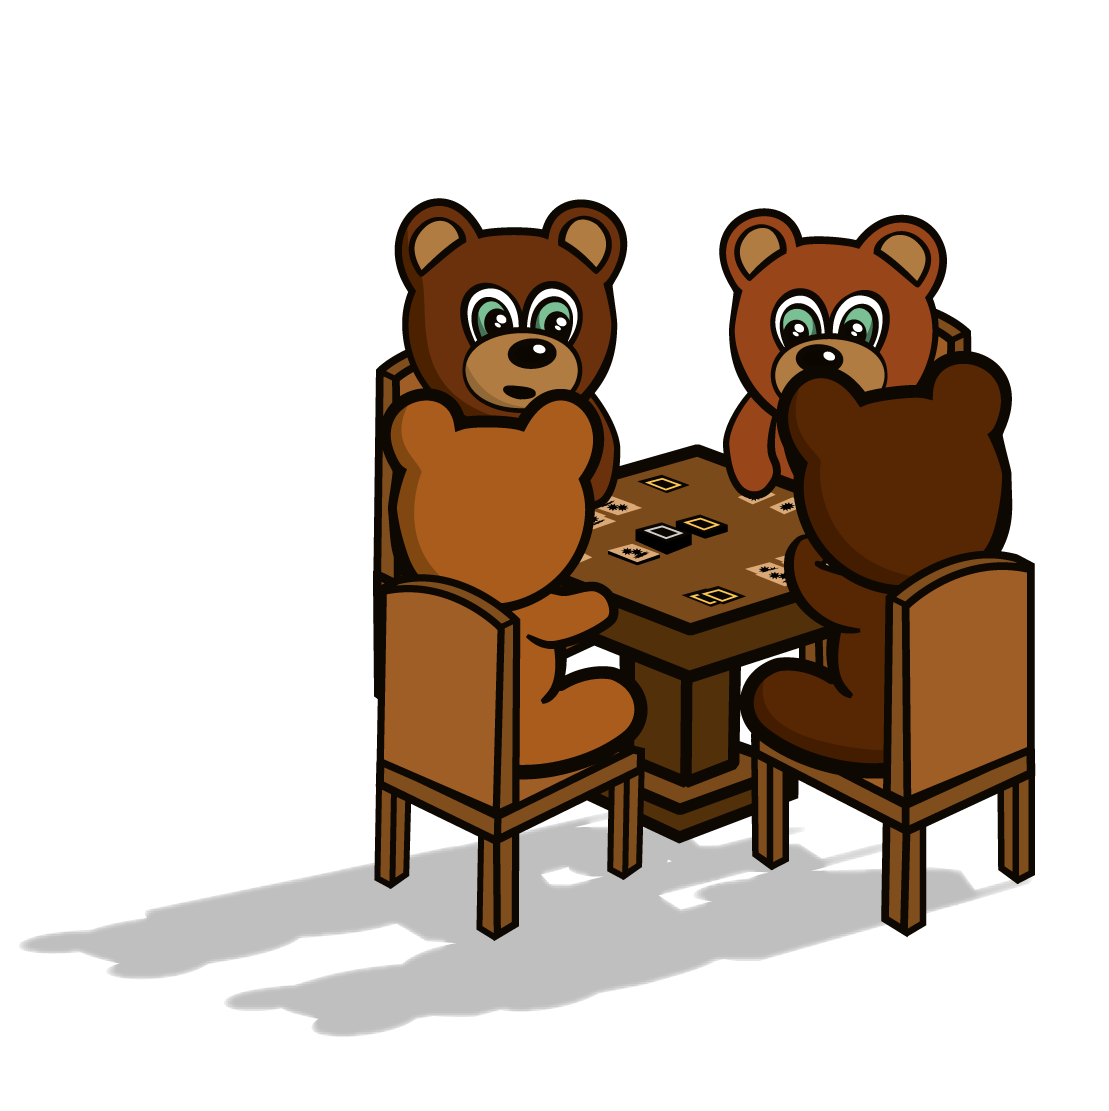 2 - 4 Players - Lonely Bears is ideally suited for 2 - 4 players, though more can play with additional packs!